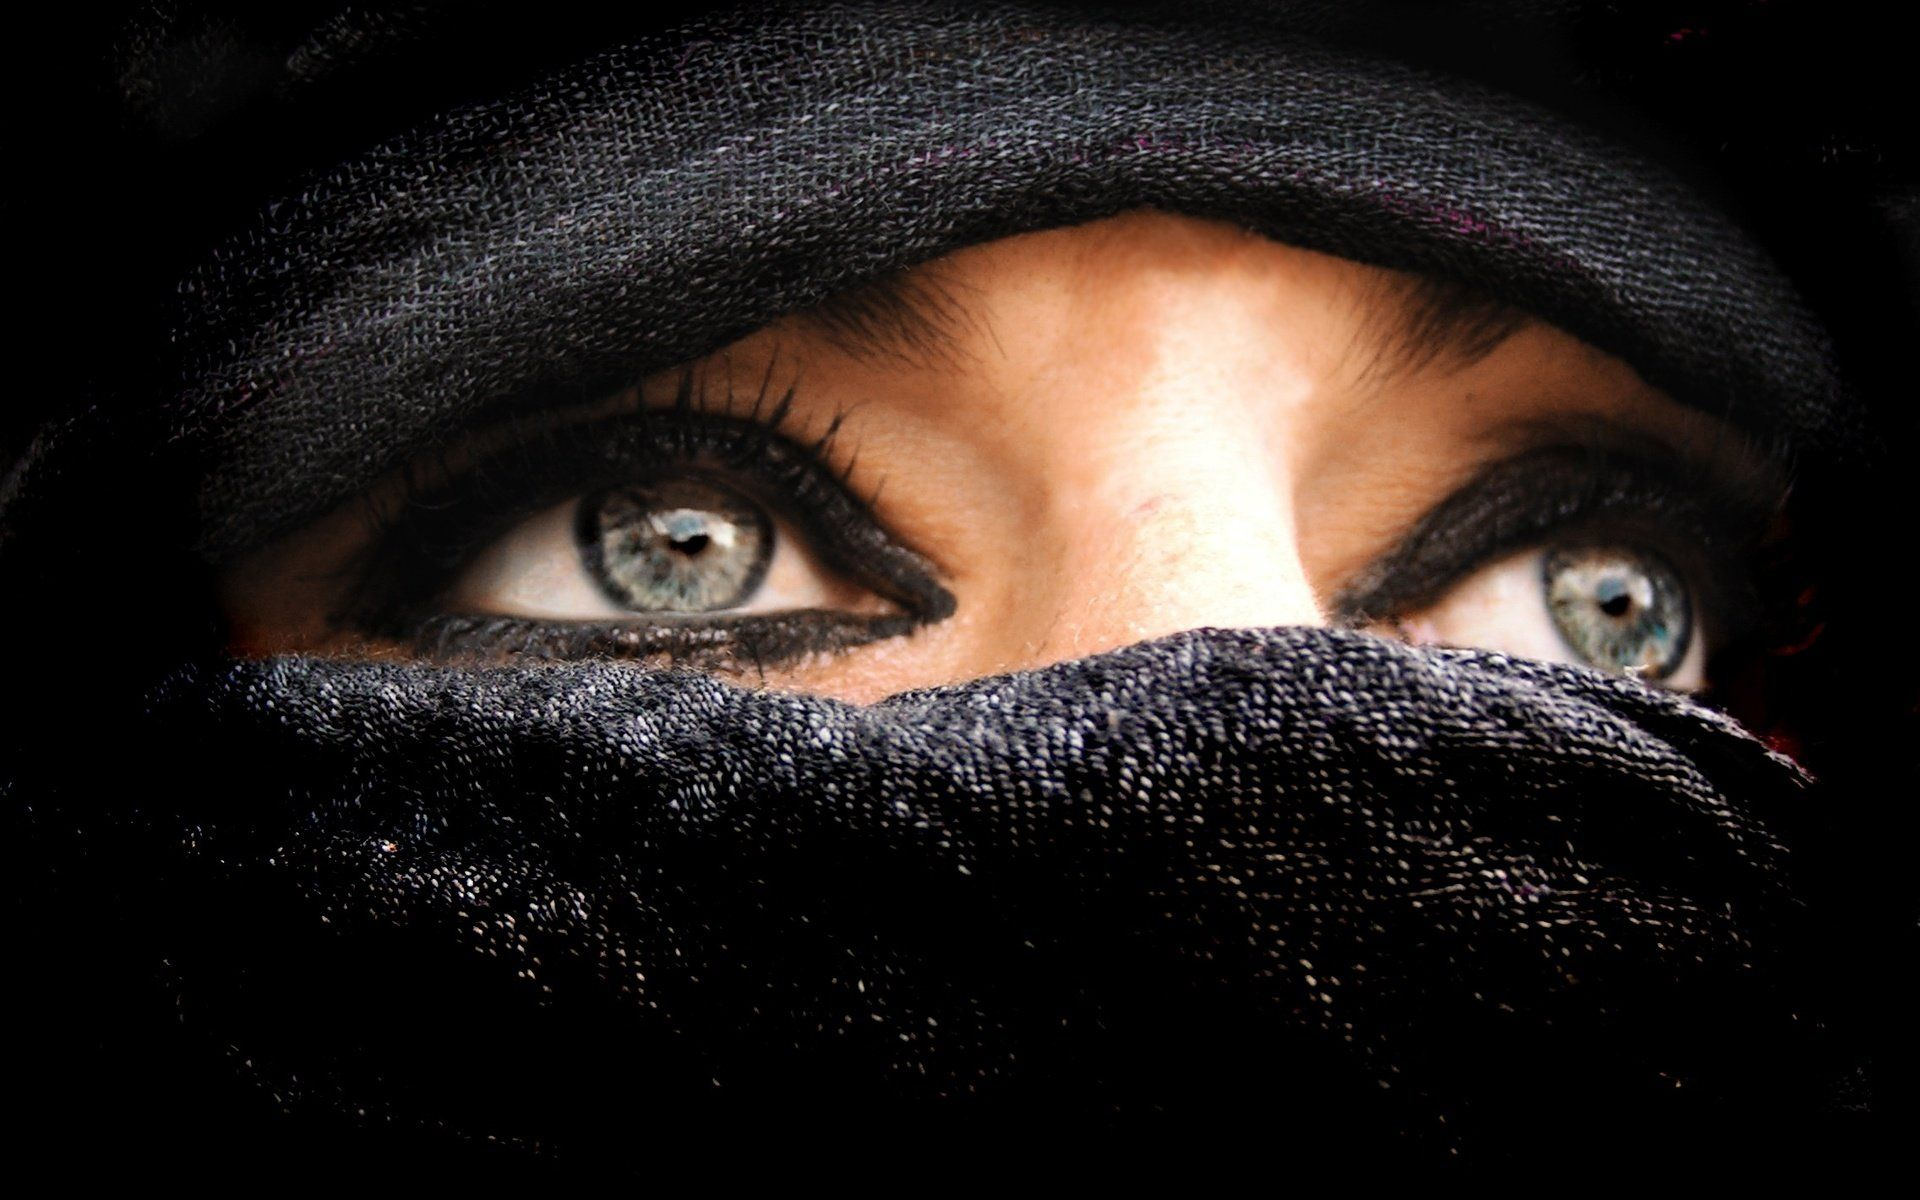 Woman In Burka Woman In Burka Beautiful Eyes Beautiful